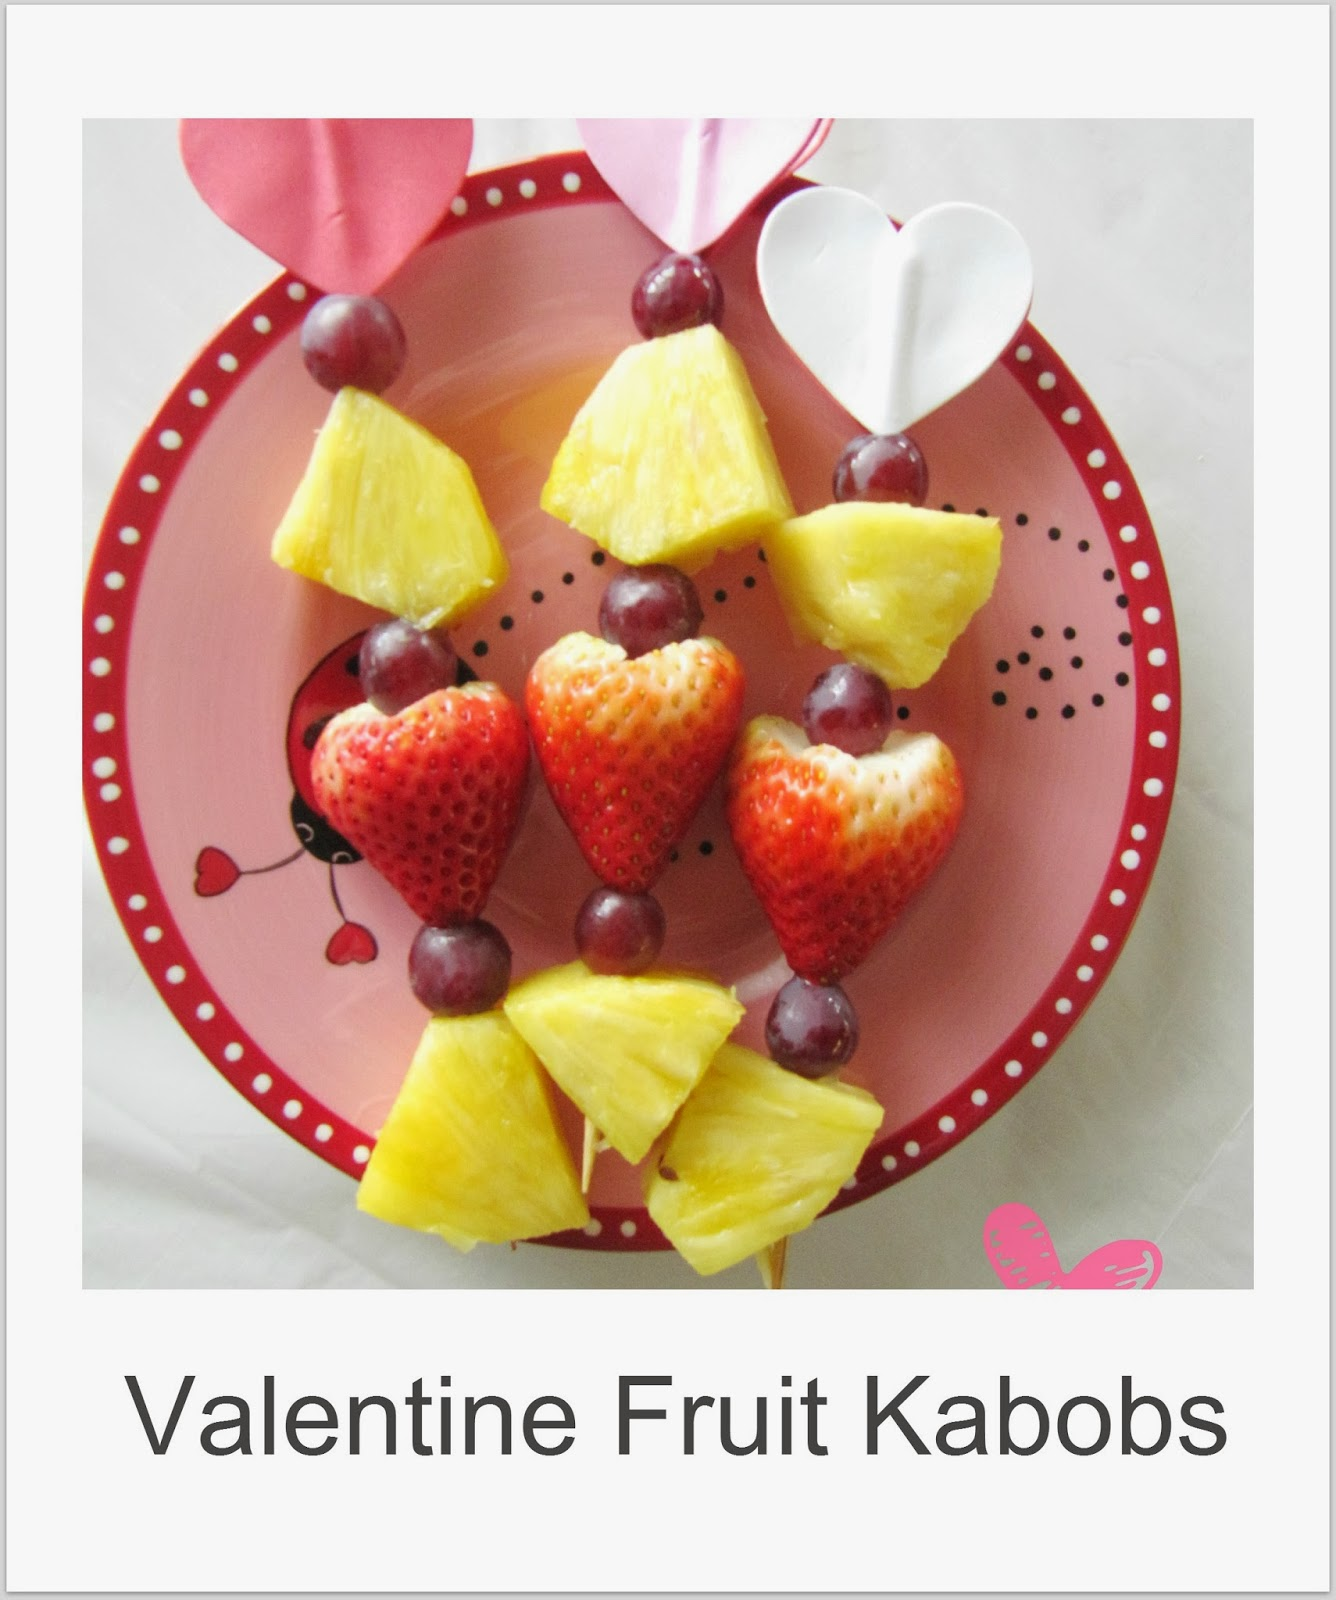 http://thewickerhouse.blogspot.com/2014/02/valentine-fruit-kabobs-few-easy-gift.html